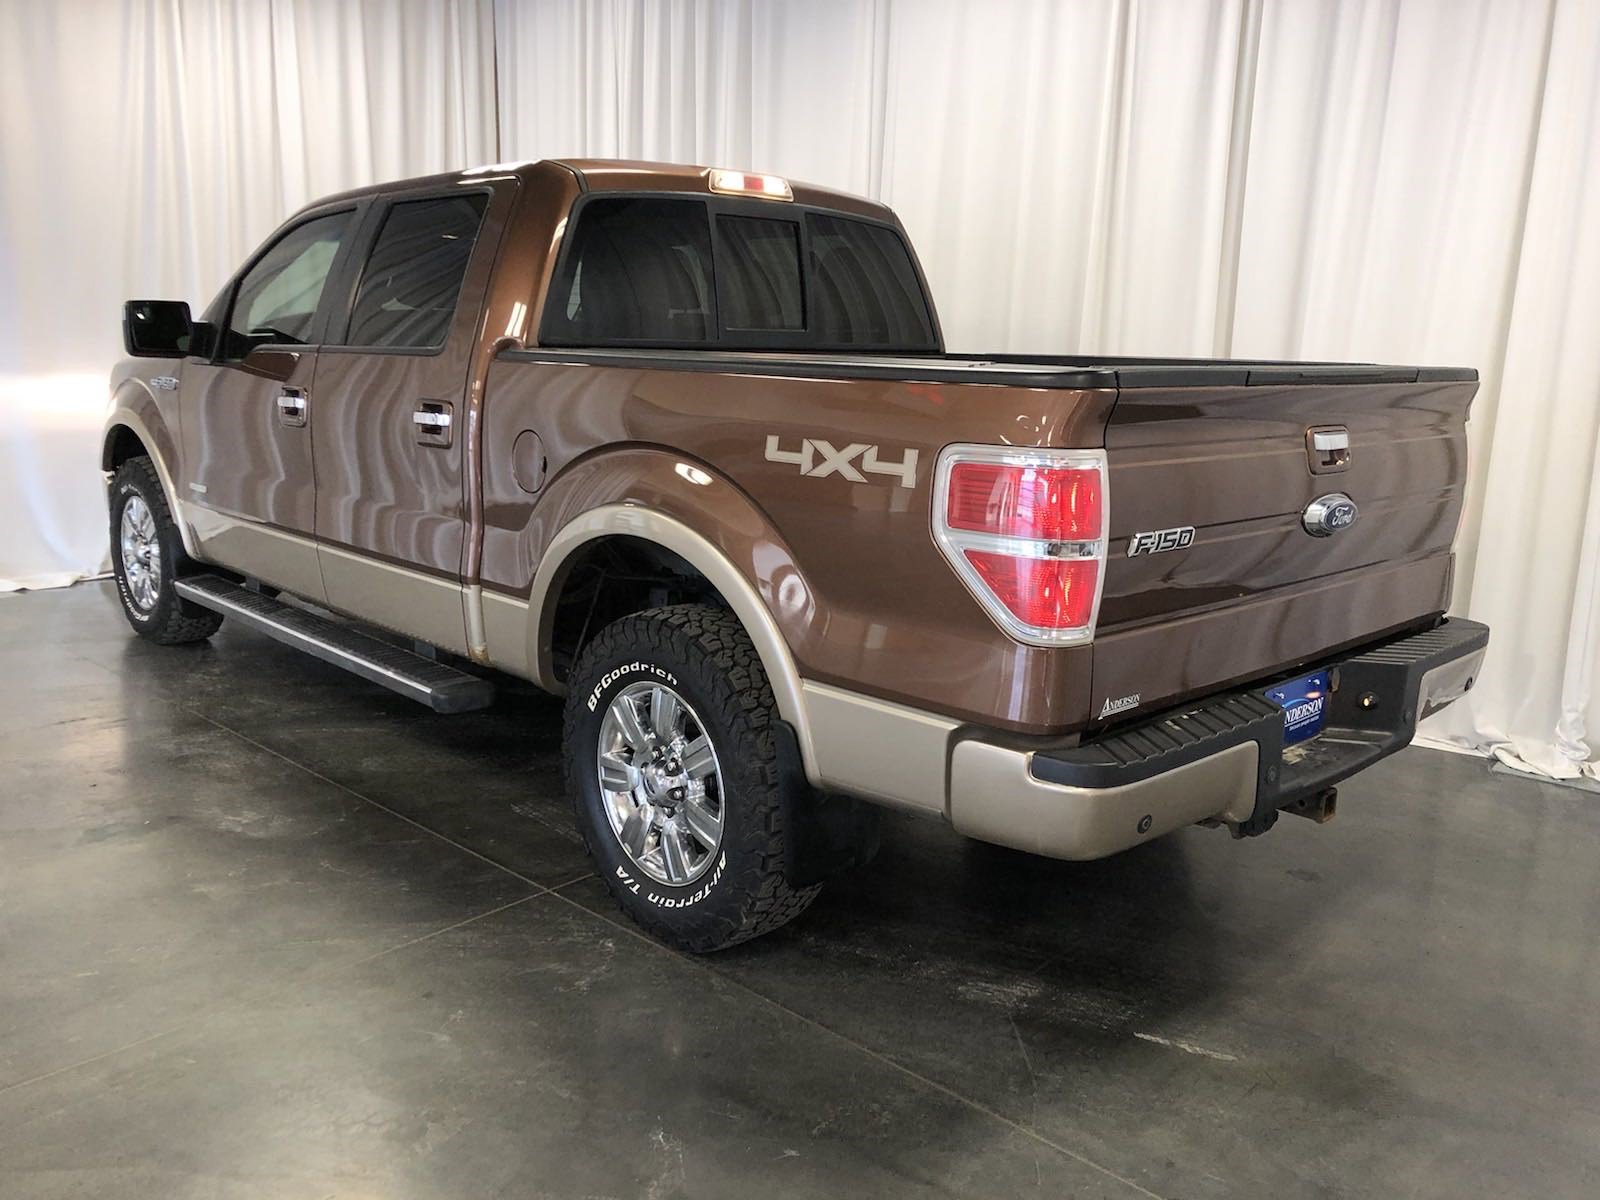 Used 2011 Ford F-150 Lariat Crew Cab Pickup for sale in St Joseph MO